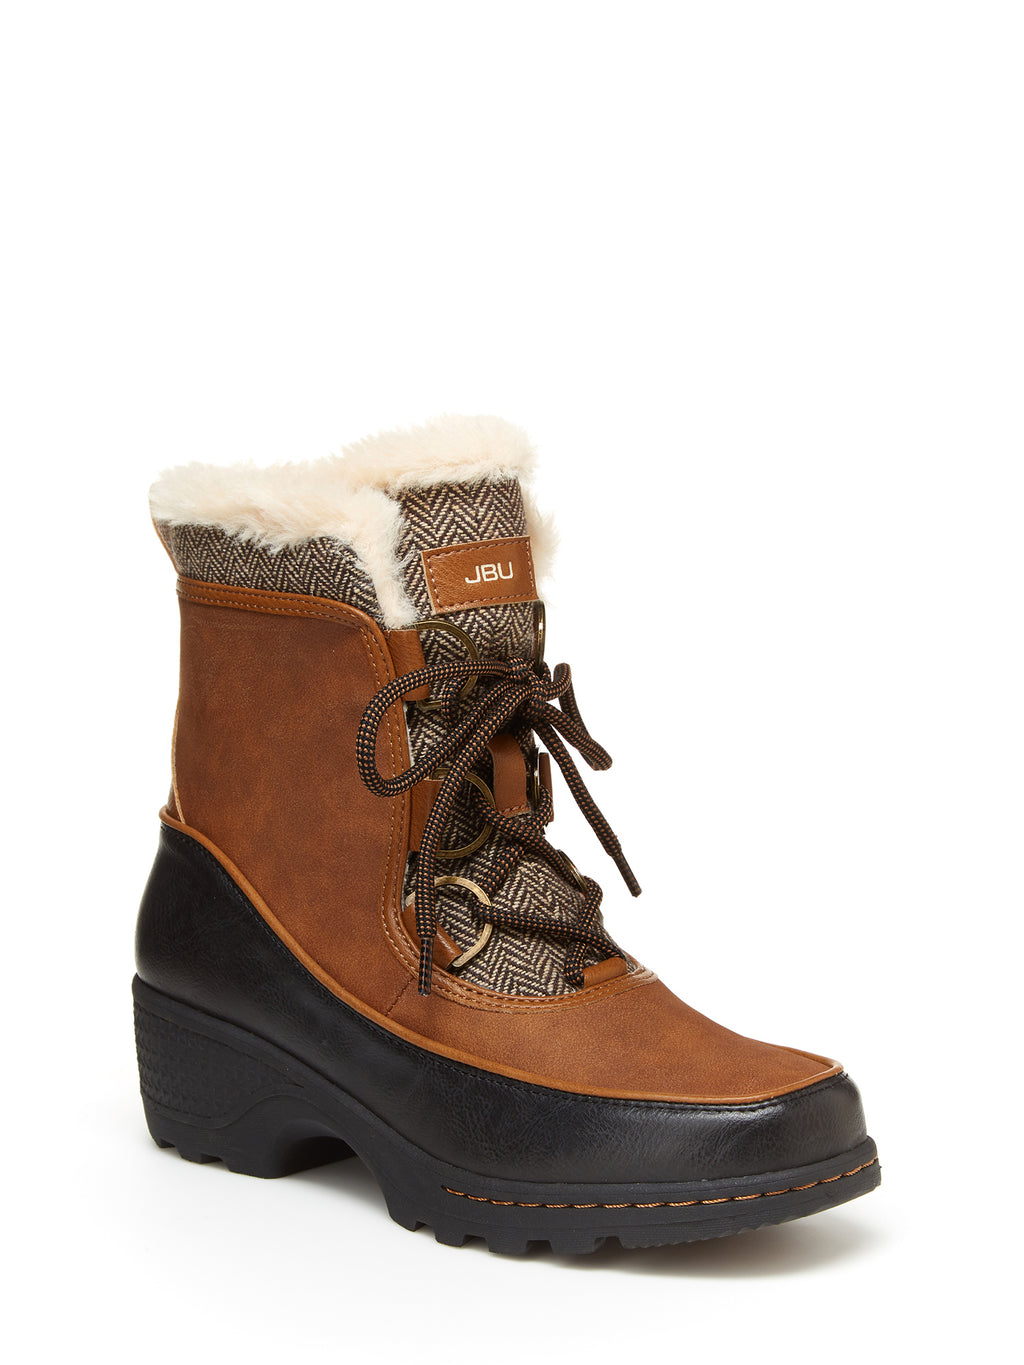 JBU by Jambu Women's Marco Weather Ready Faux Fur Boots